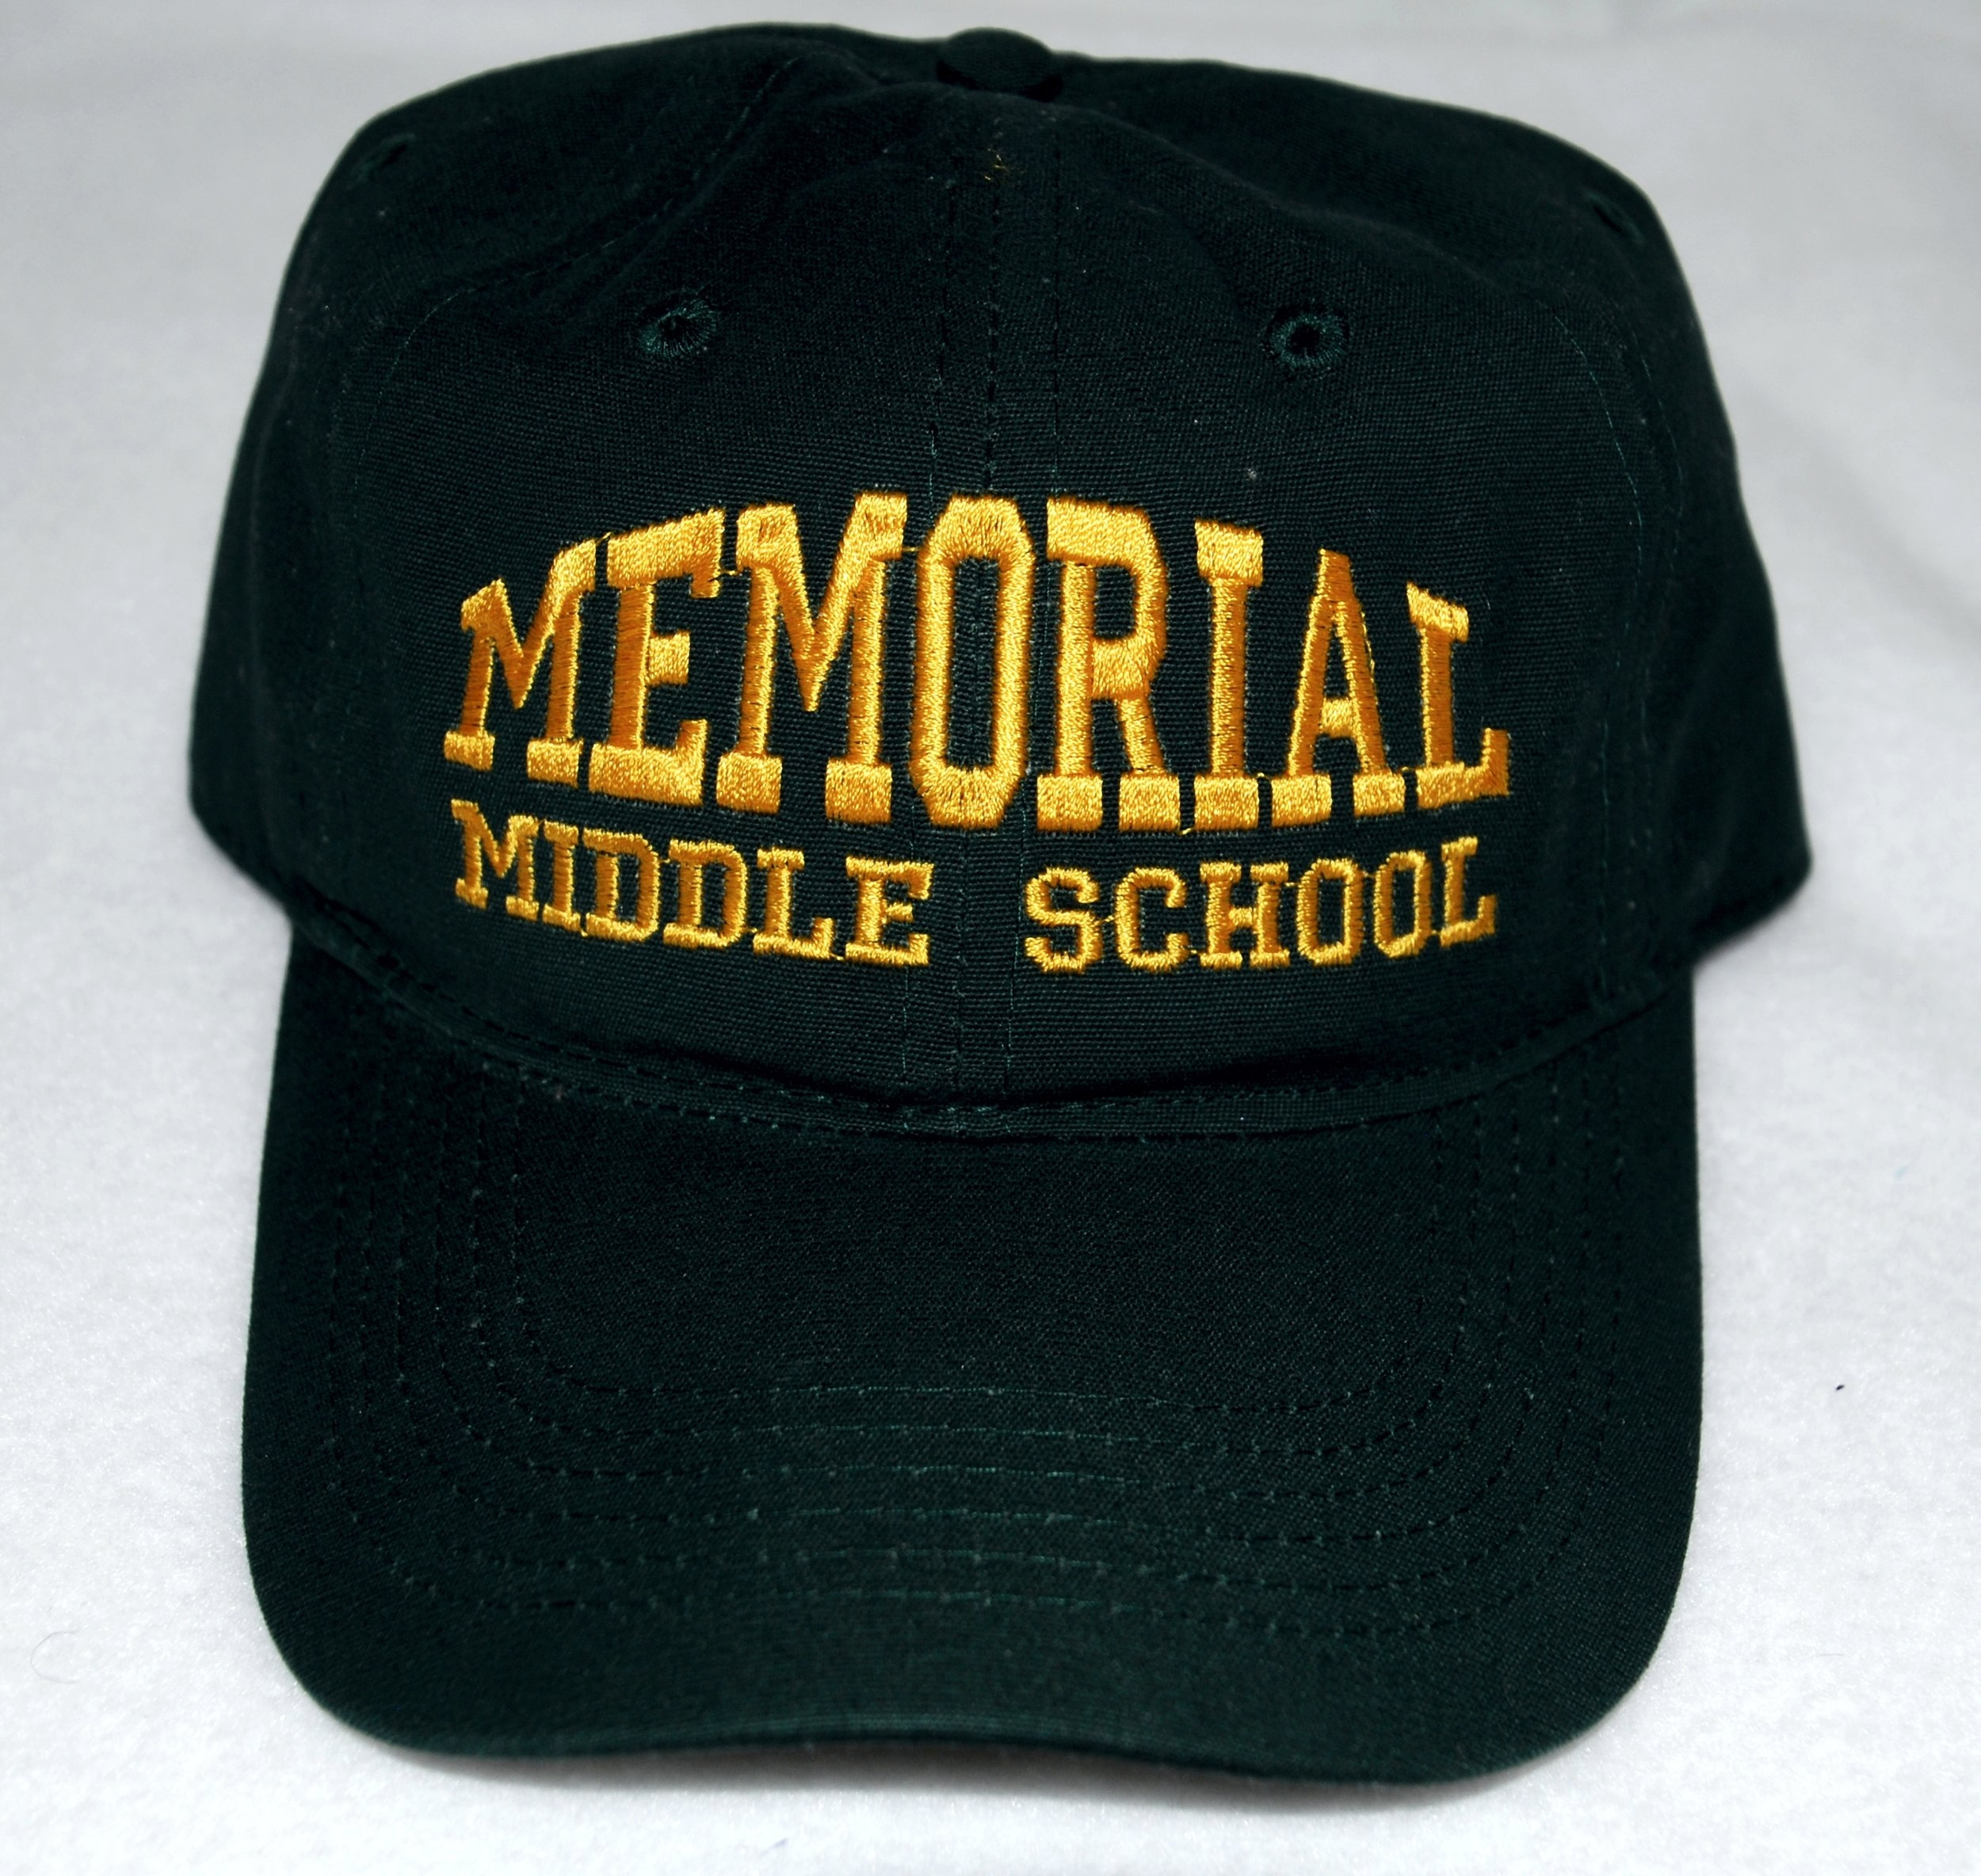 Memorial Middle School embroidered cap (front).